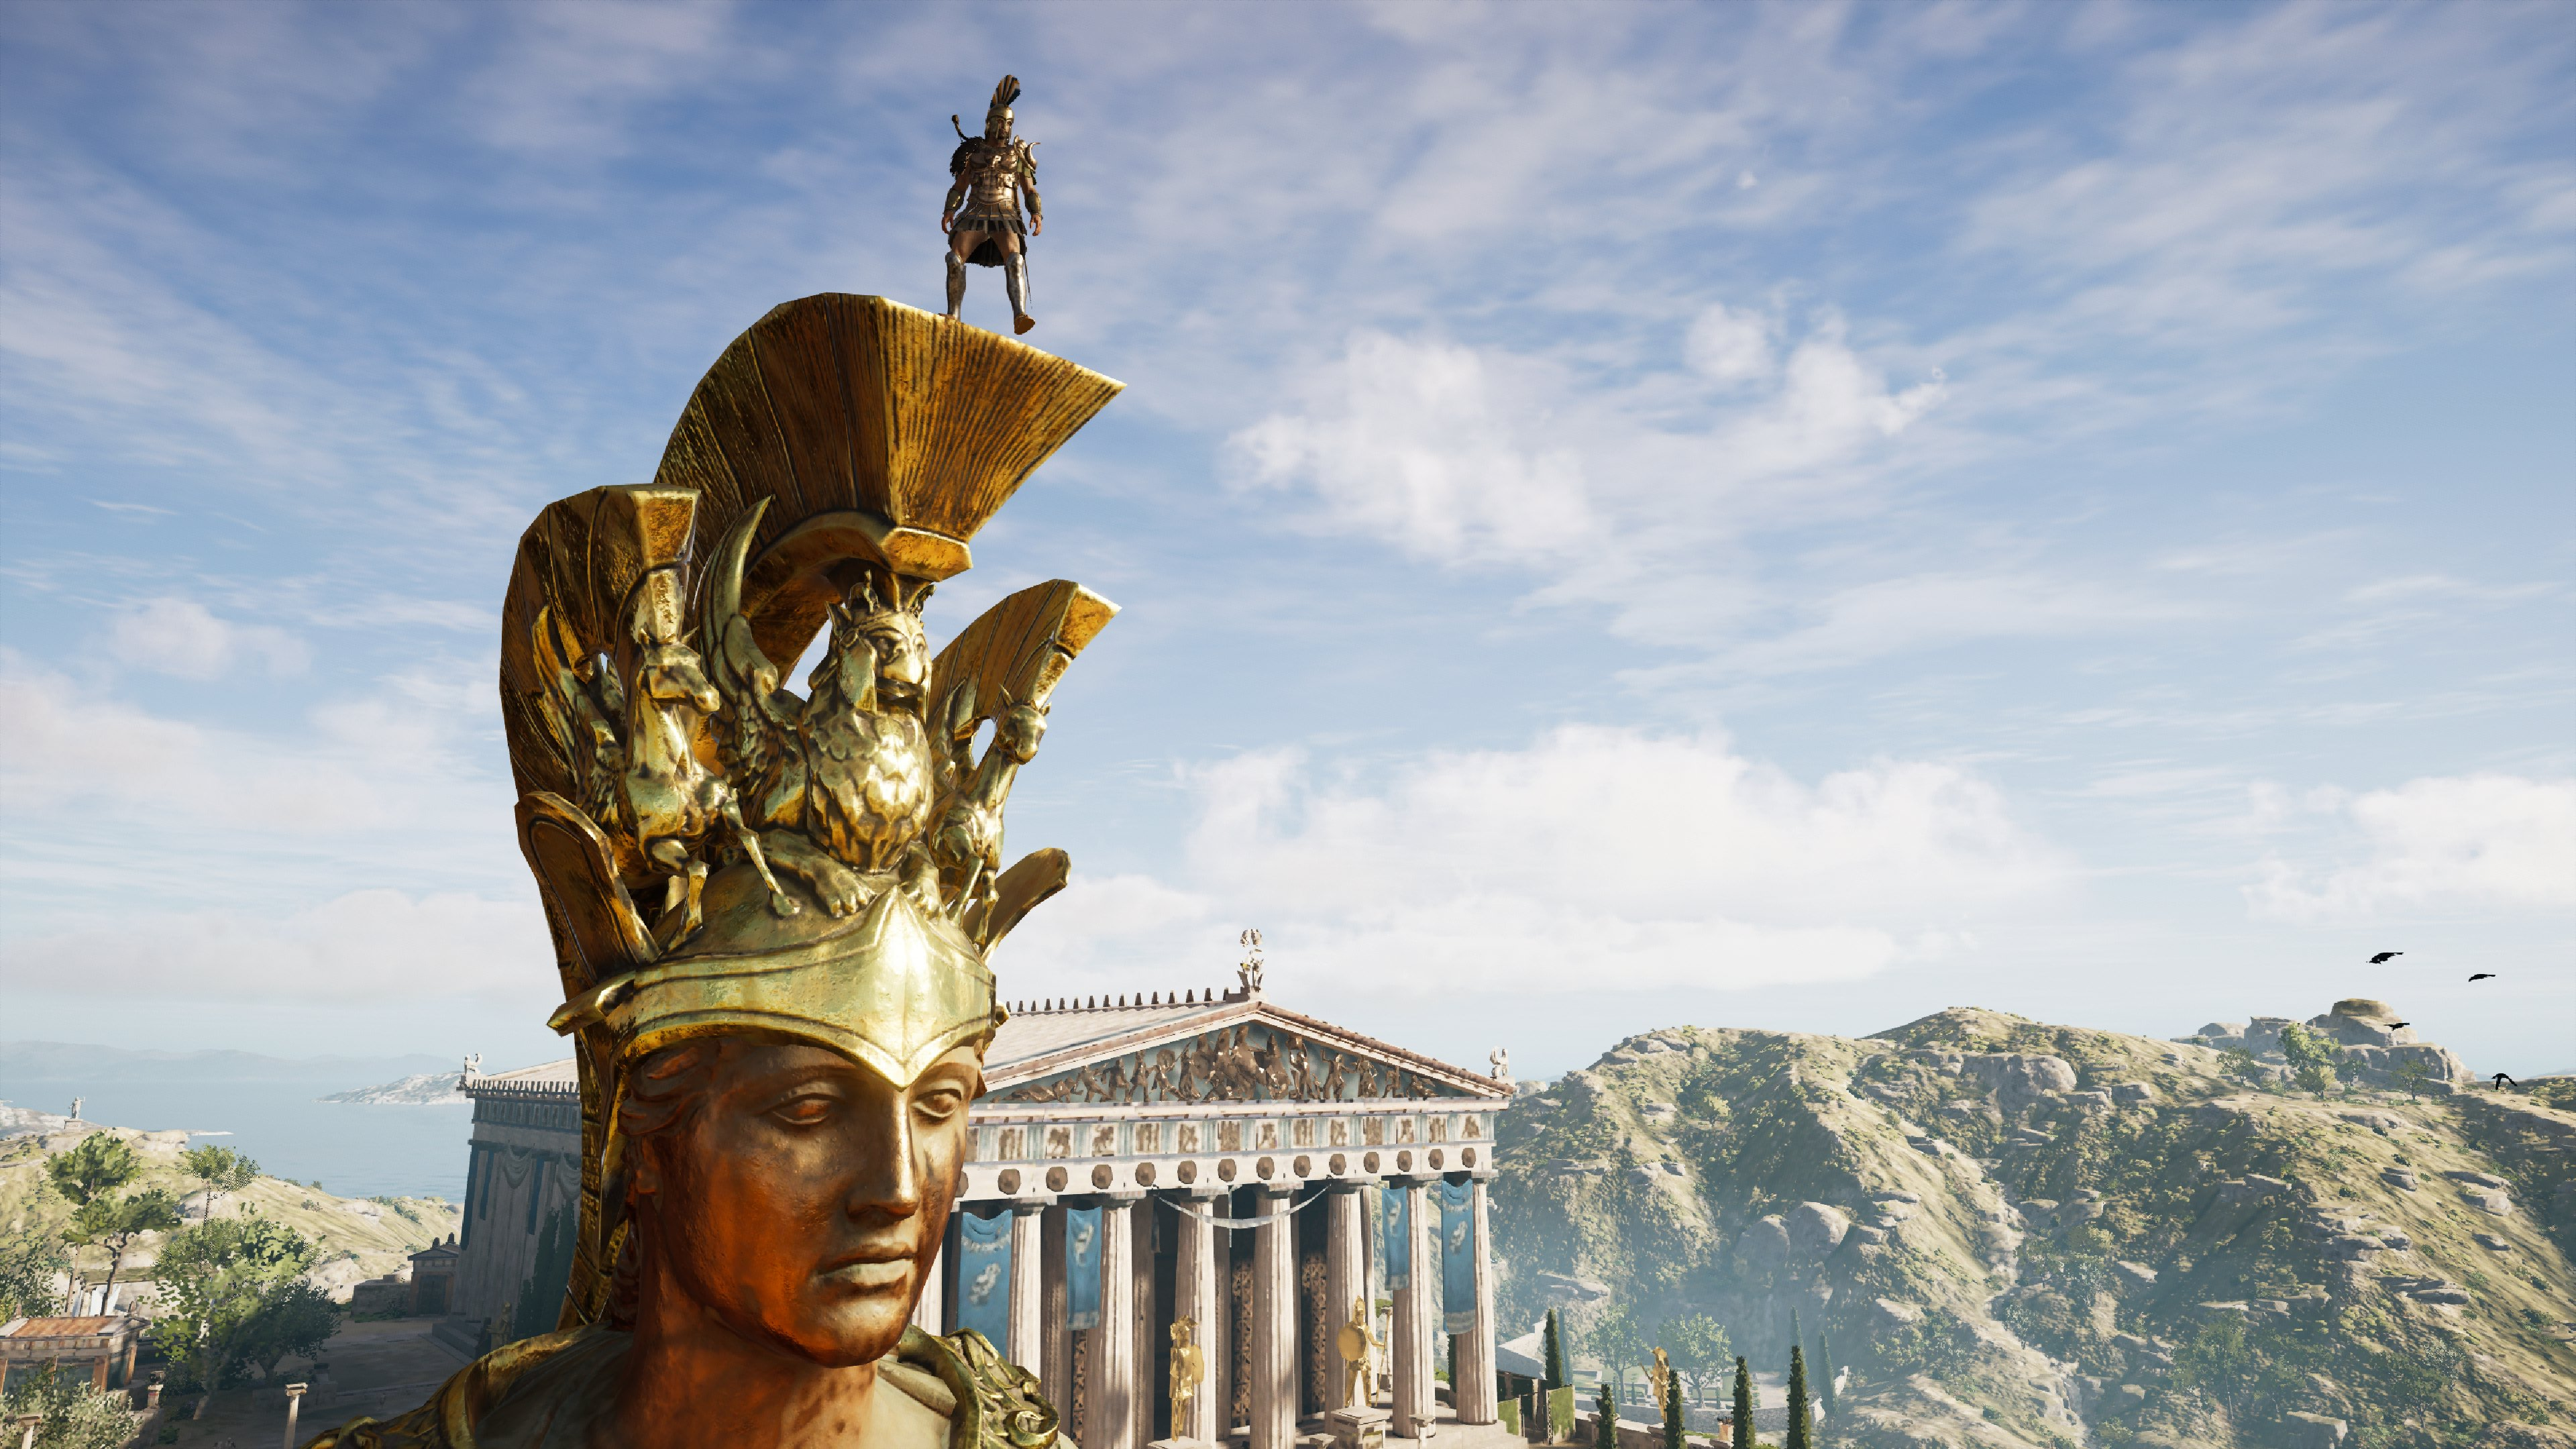 Standing Atop the Statues